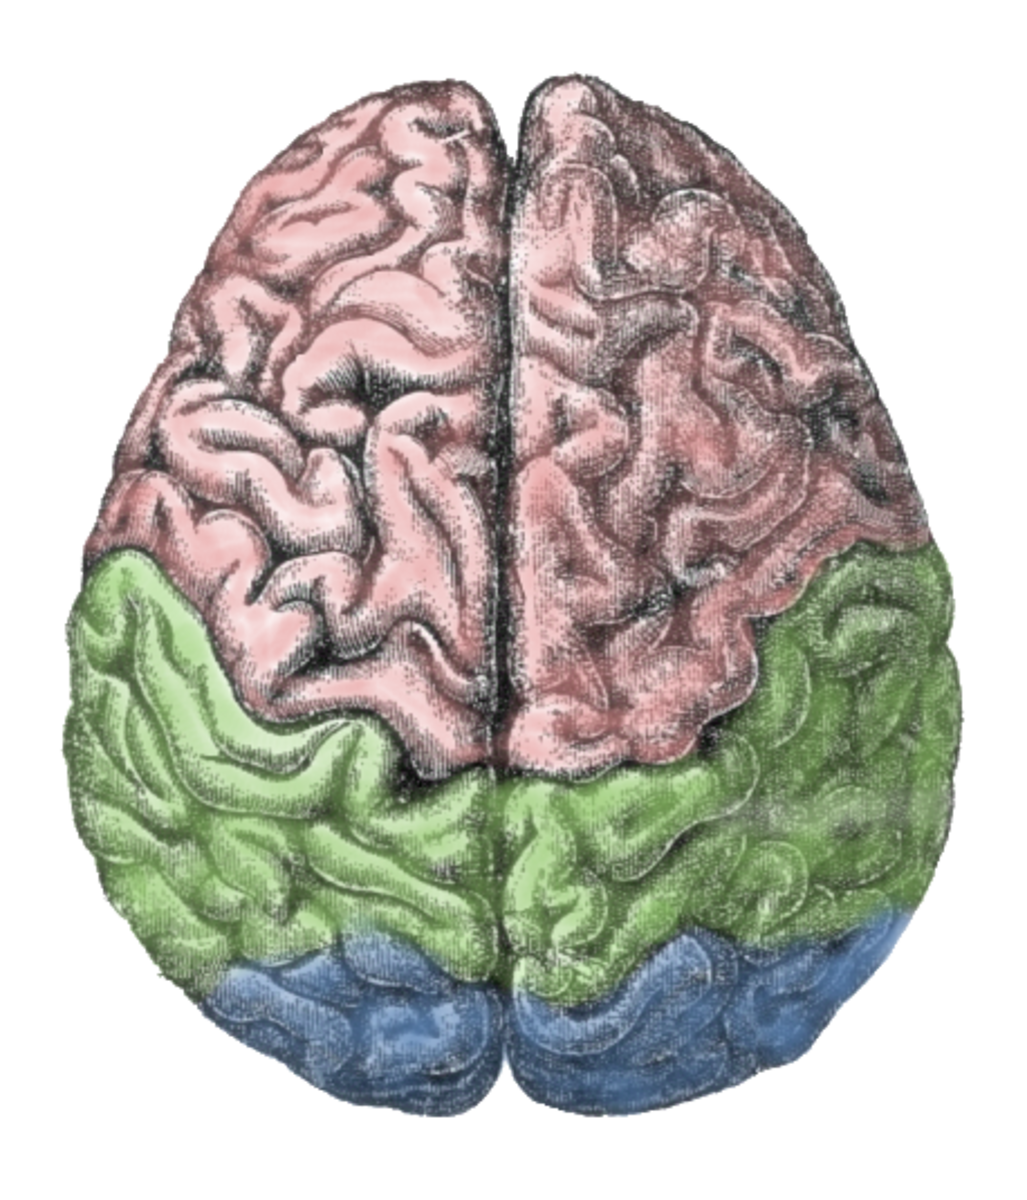 Psychiatry knows little about the brain